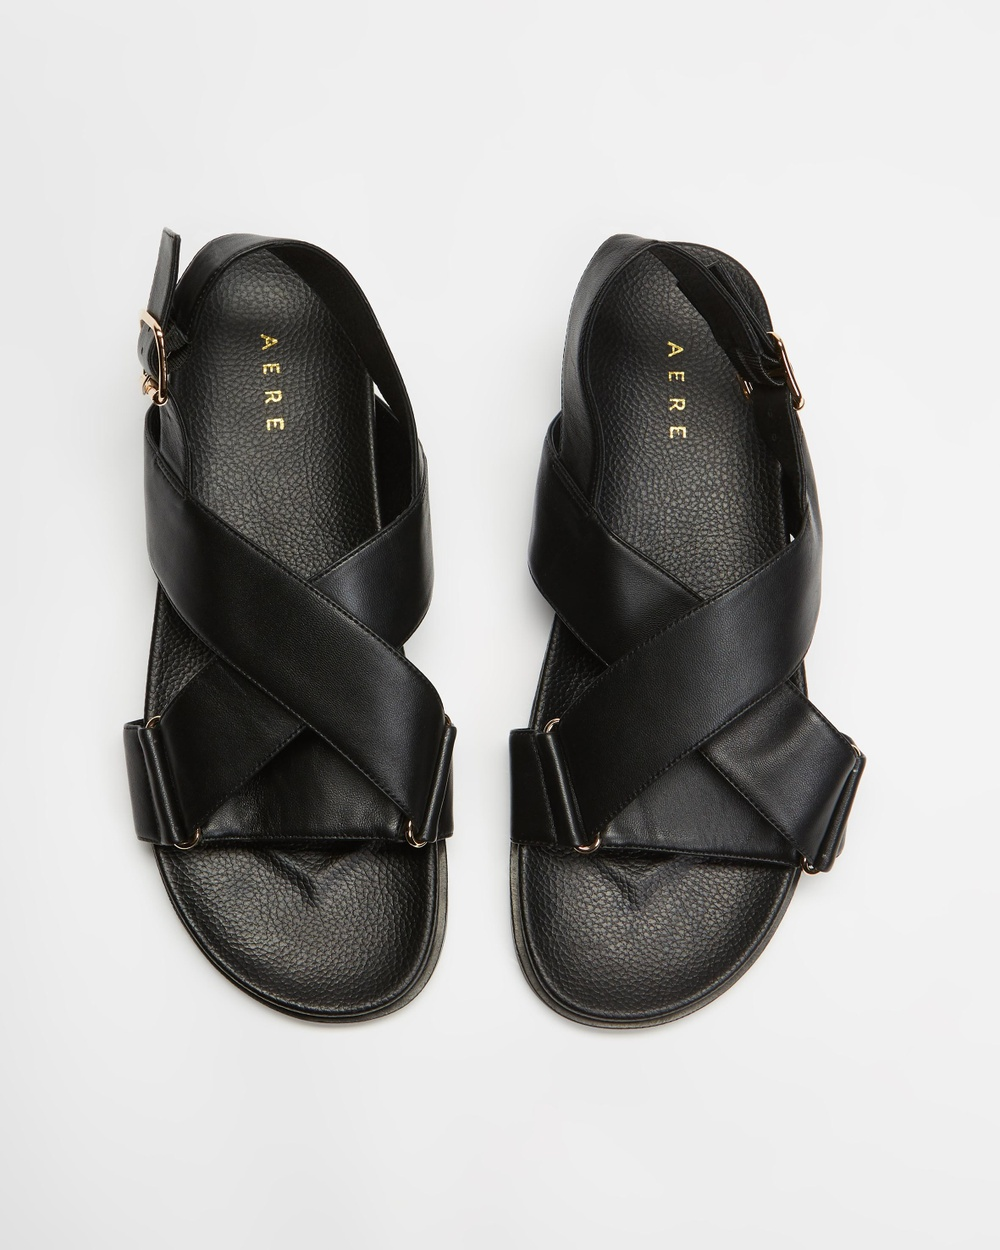 AERE Crossover Leather Footbed Sandals Shoes Black Leather